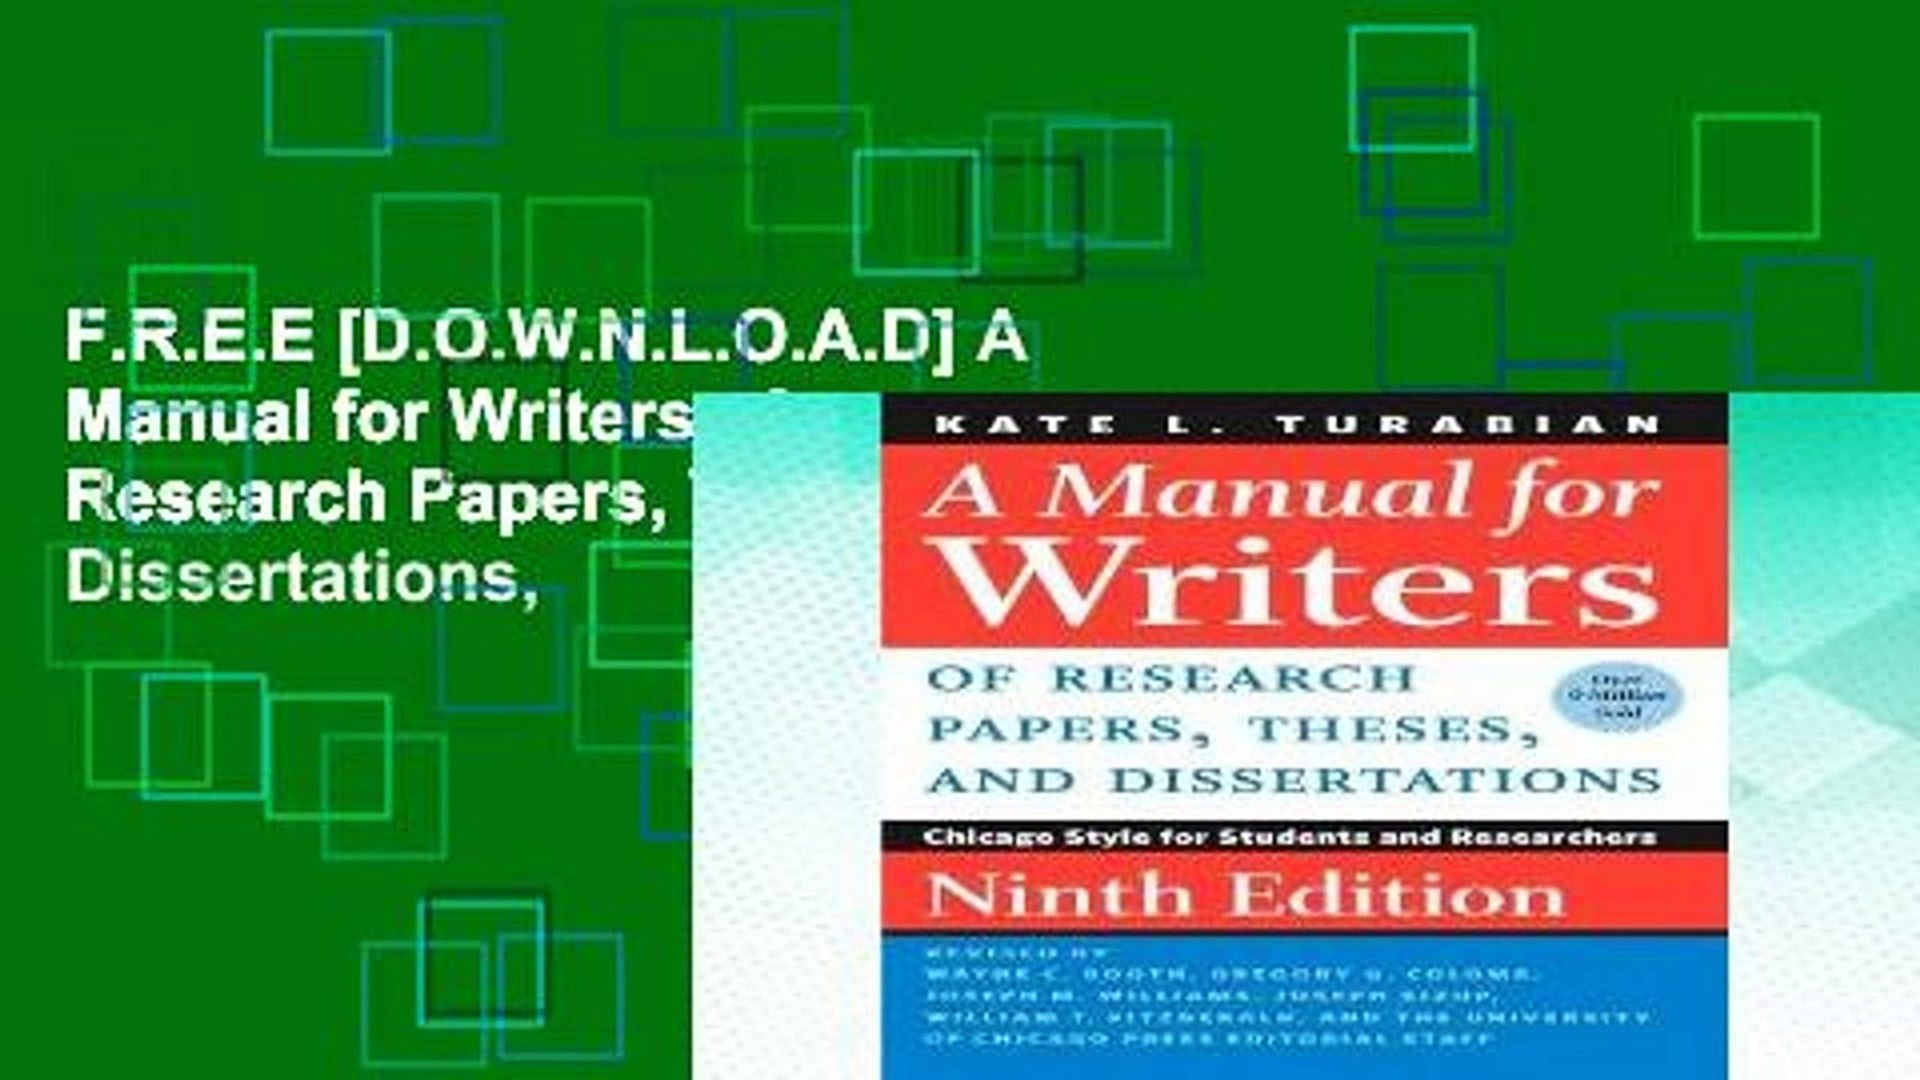 016 Manual For Writers Of Research Papers Theses And Dissertations Paper X1080 Sensational A Ed. 8 Turabian Ninth Edition Full